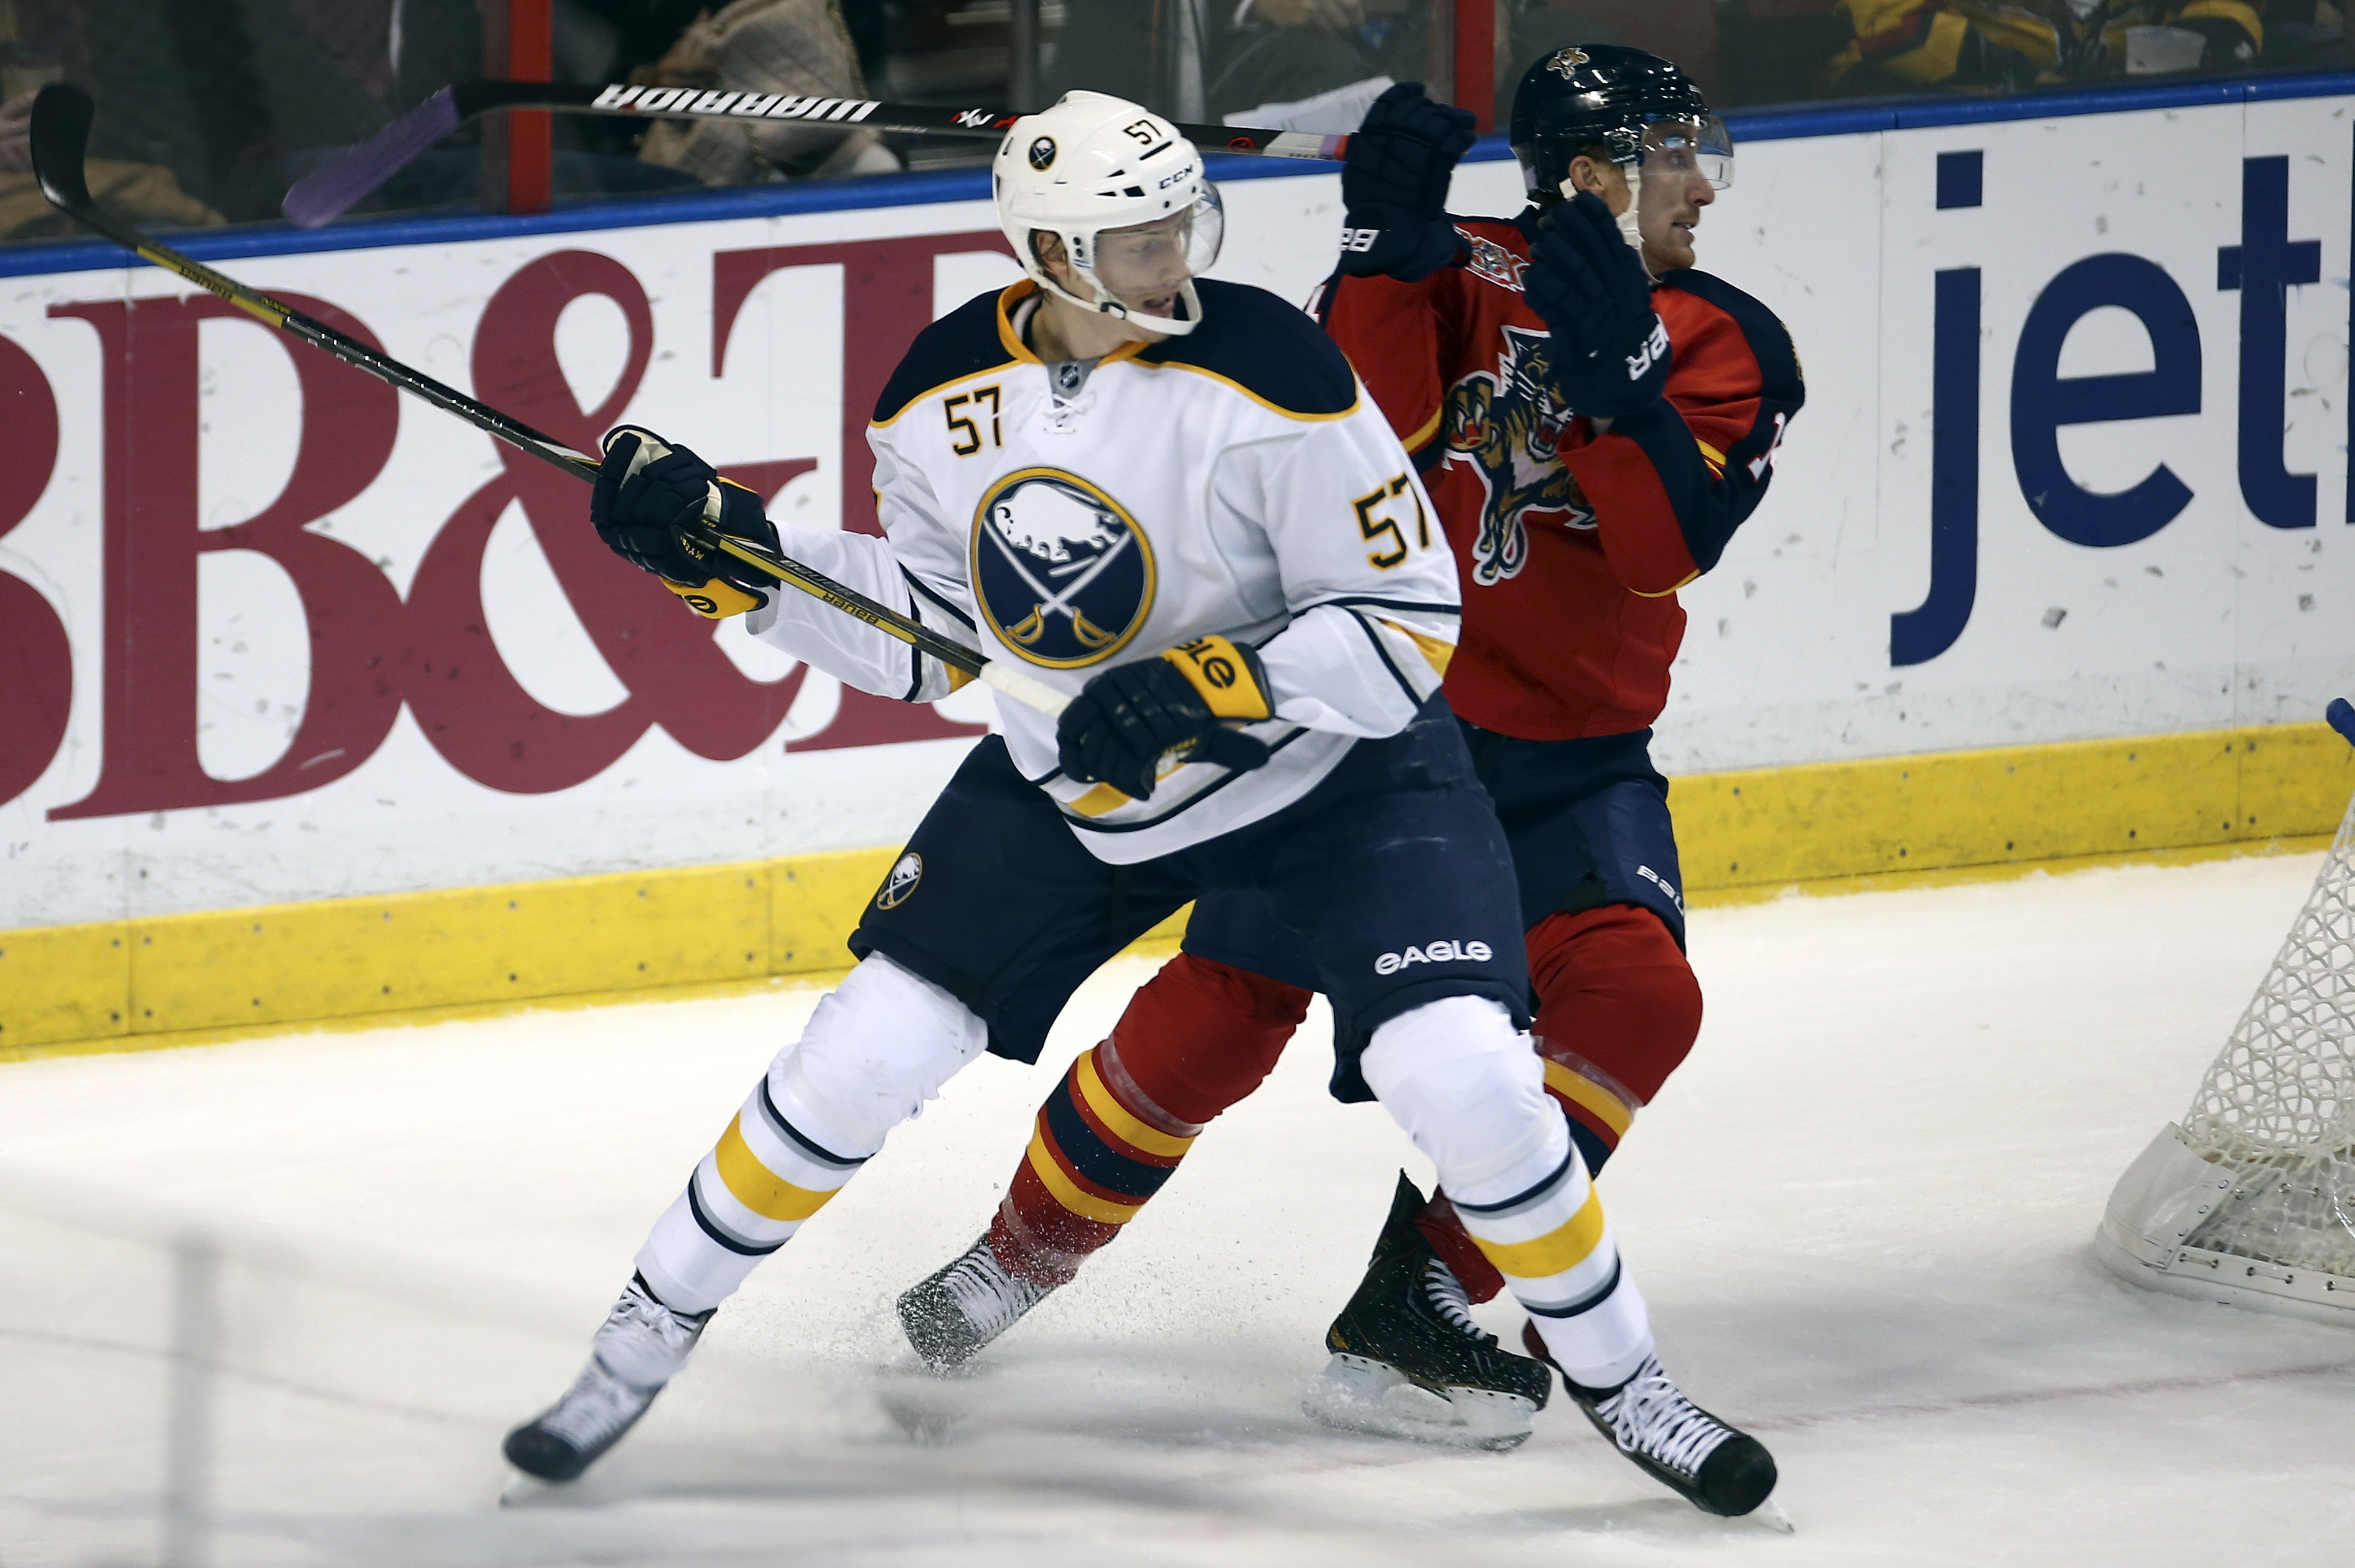 Buffalo Sabres defenseman Tyler Myers and Florida Panthers forward Tomas Fleischmann chase the puck during the first period. (AP Photo/J Pat Carter)